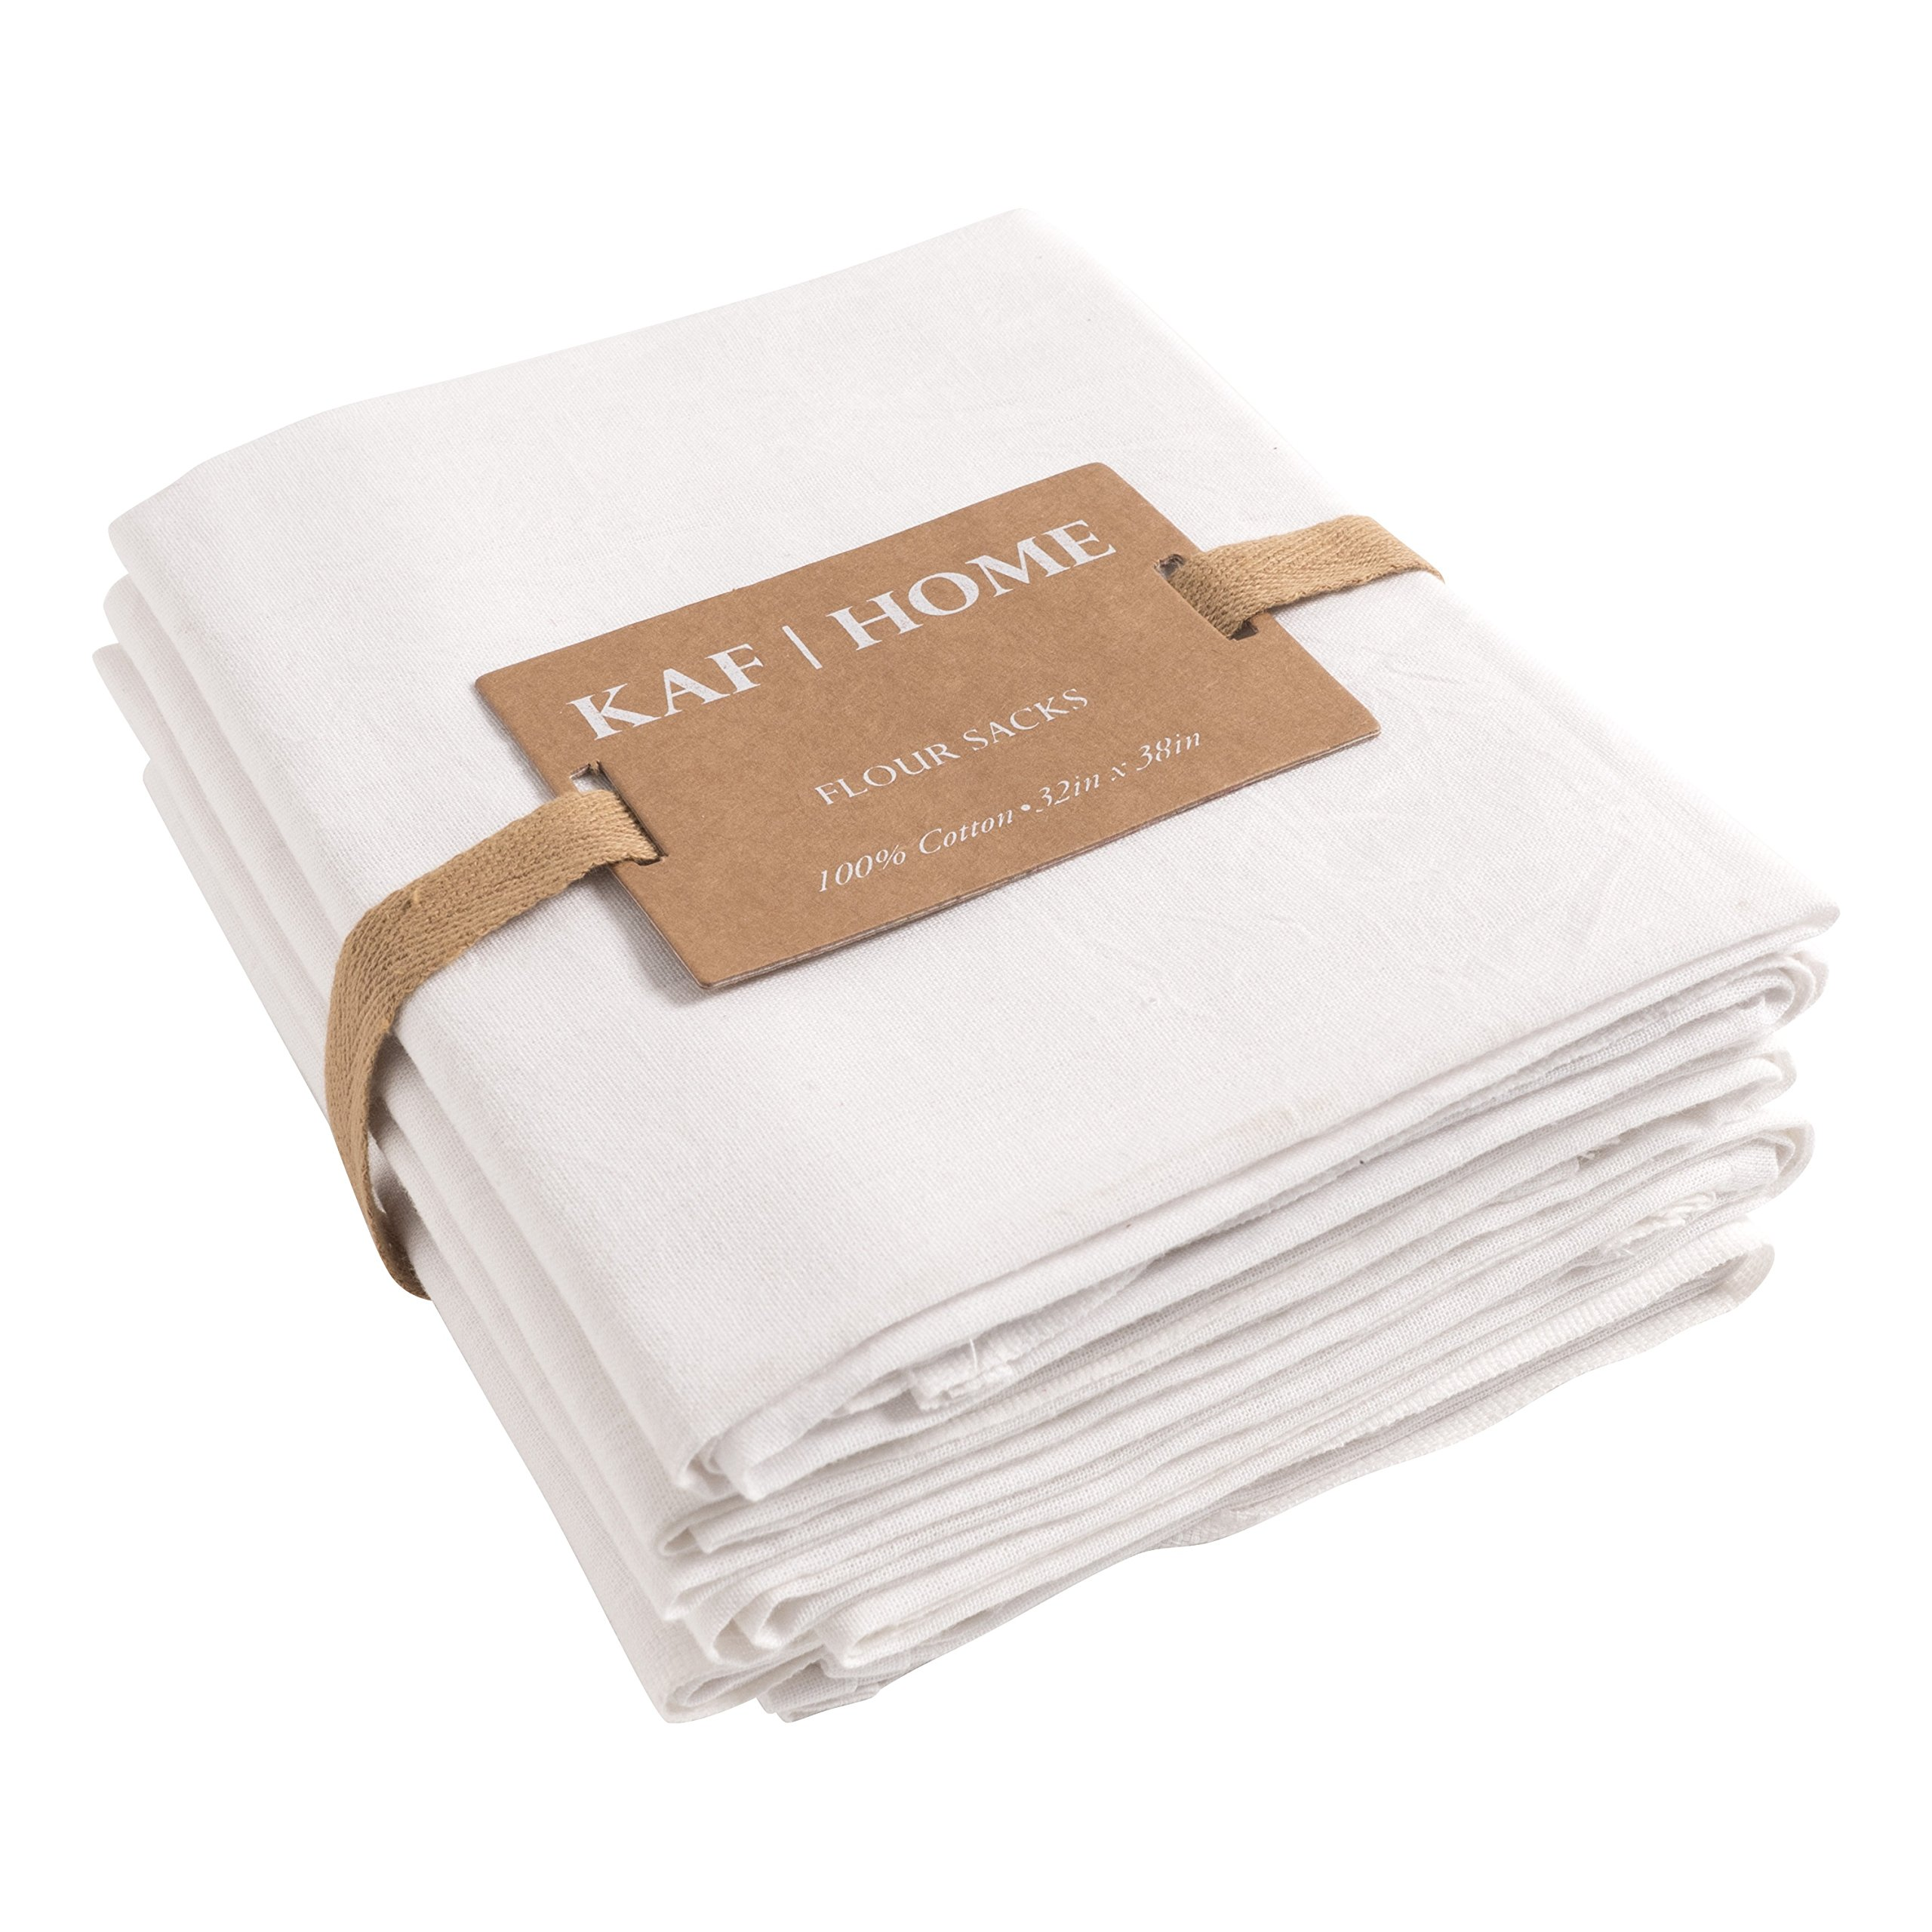 KAF Home Flour Sack Kitchen Towels, White, Set of 4, 100% Cotton